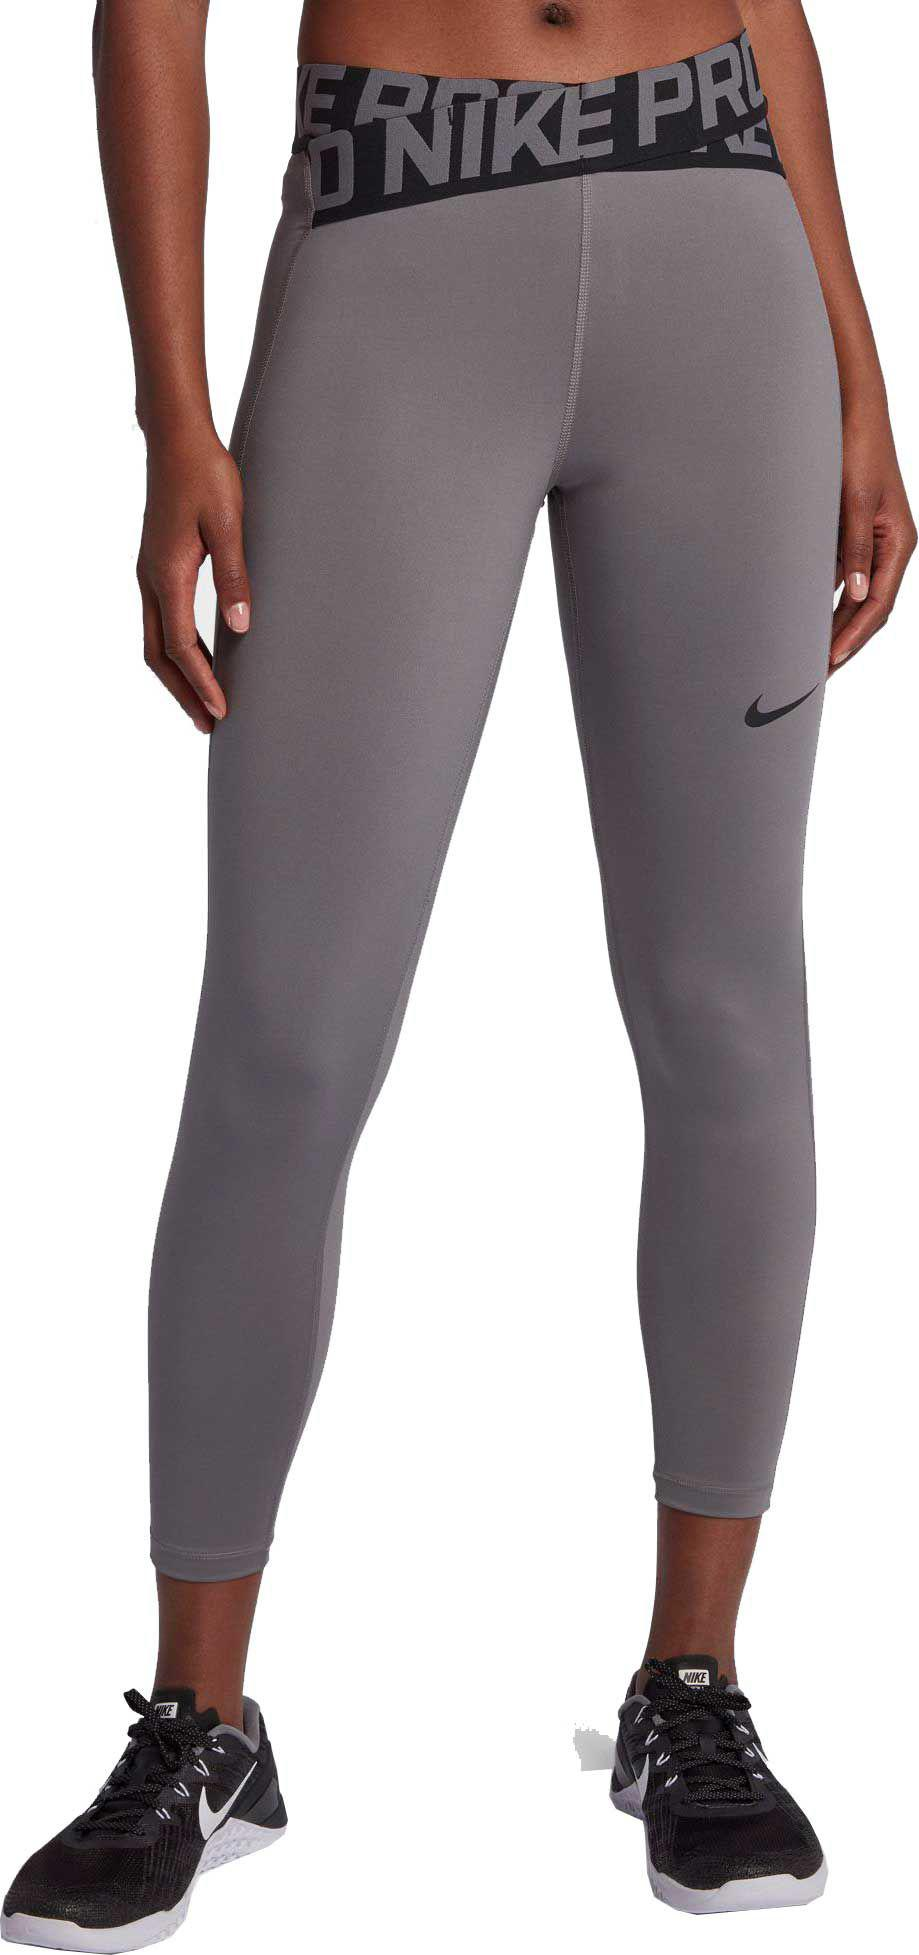 440abbbdf46c85 Nike Pro Intertwist 7/8 Training Tights in Gray - Lyst